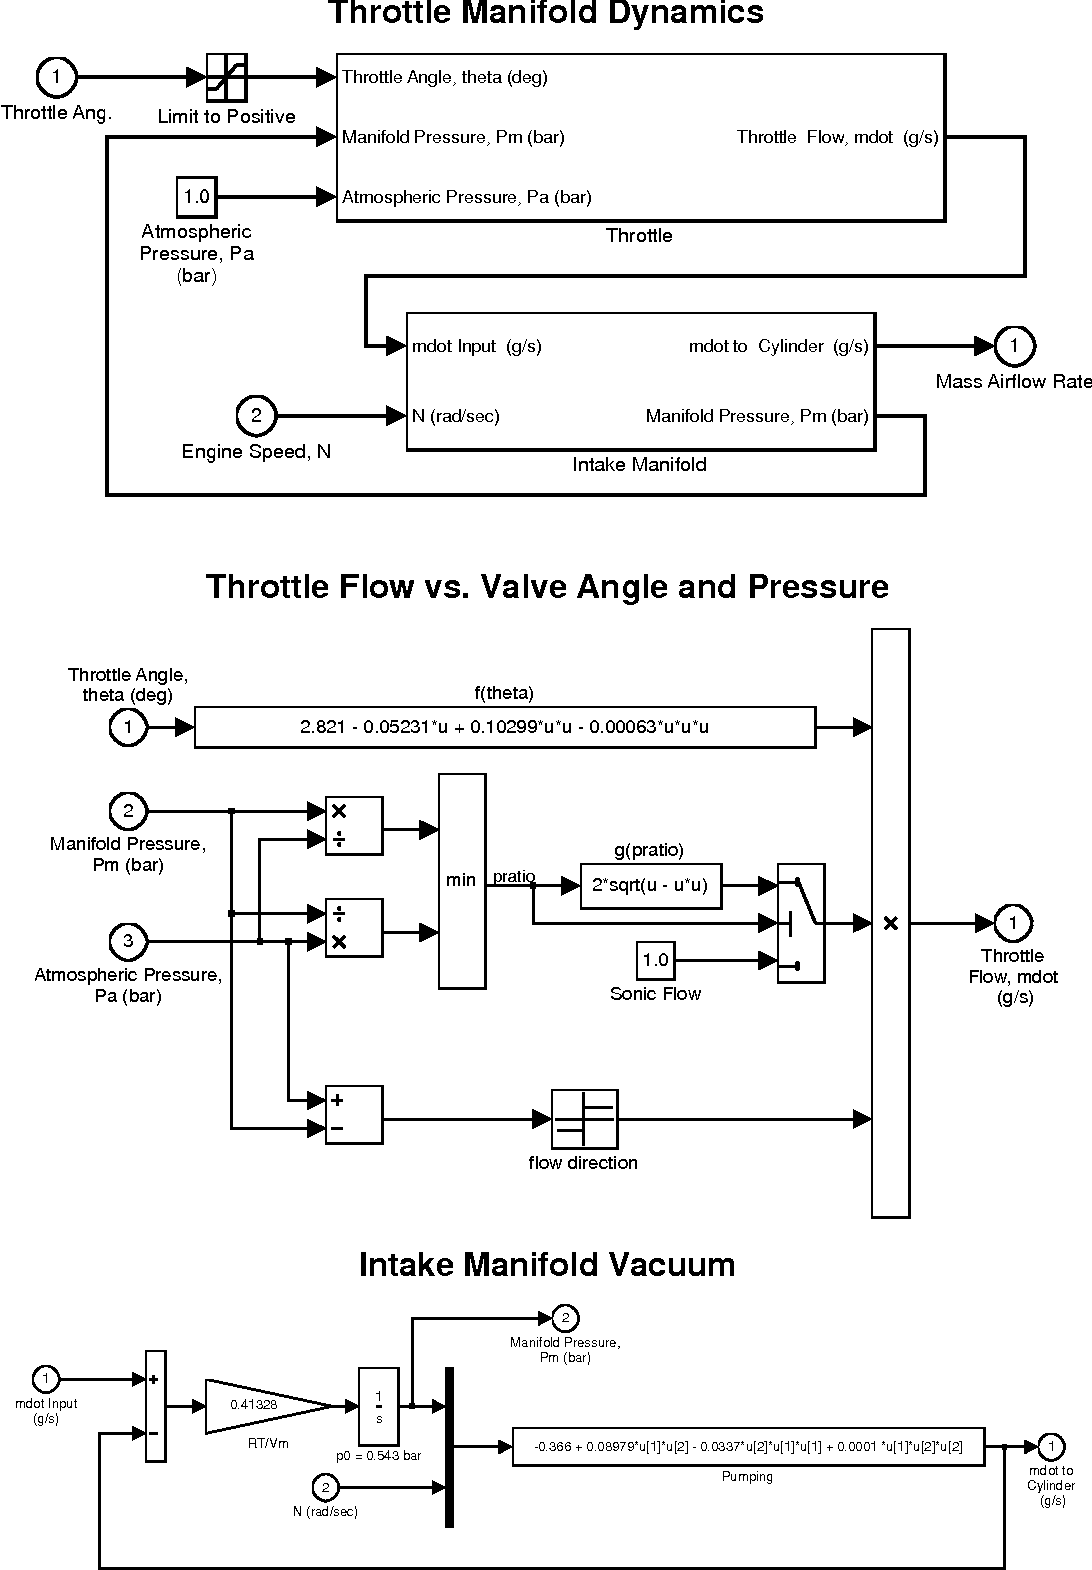 Pdf Using Simulink And Stateflowtm In Automotive Applications Semantic Scholar